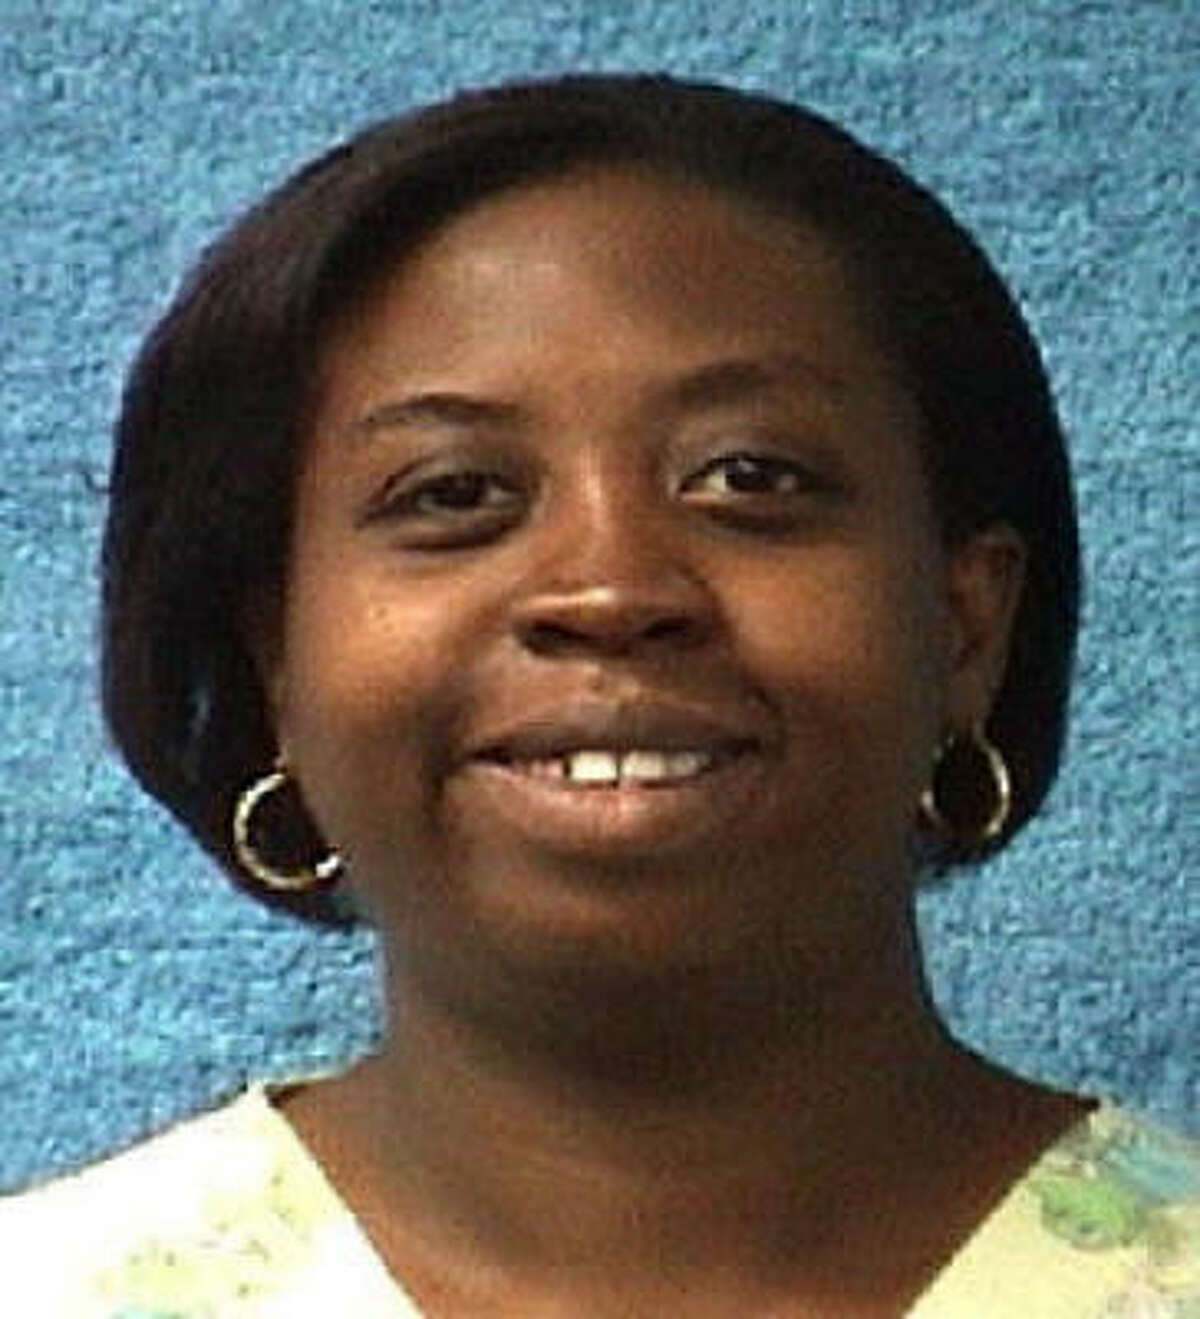 Lois Renee Wiltz, a nurse at the Harris County jail, has been accused of watching her boyfriend whip her 19-month-old daughter with a wire clothes hanger and her 12-year-old son with an extension cord.